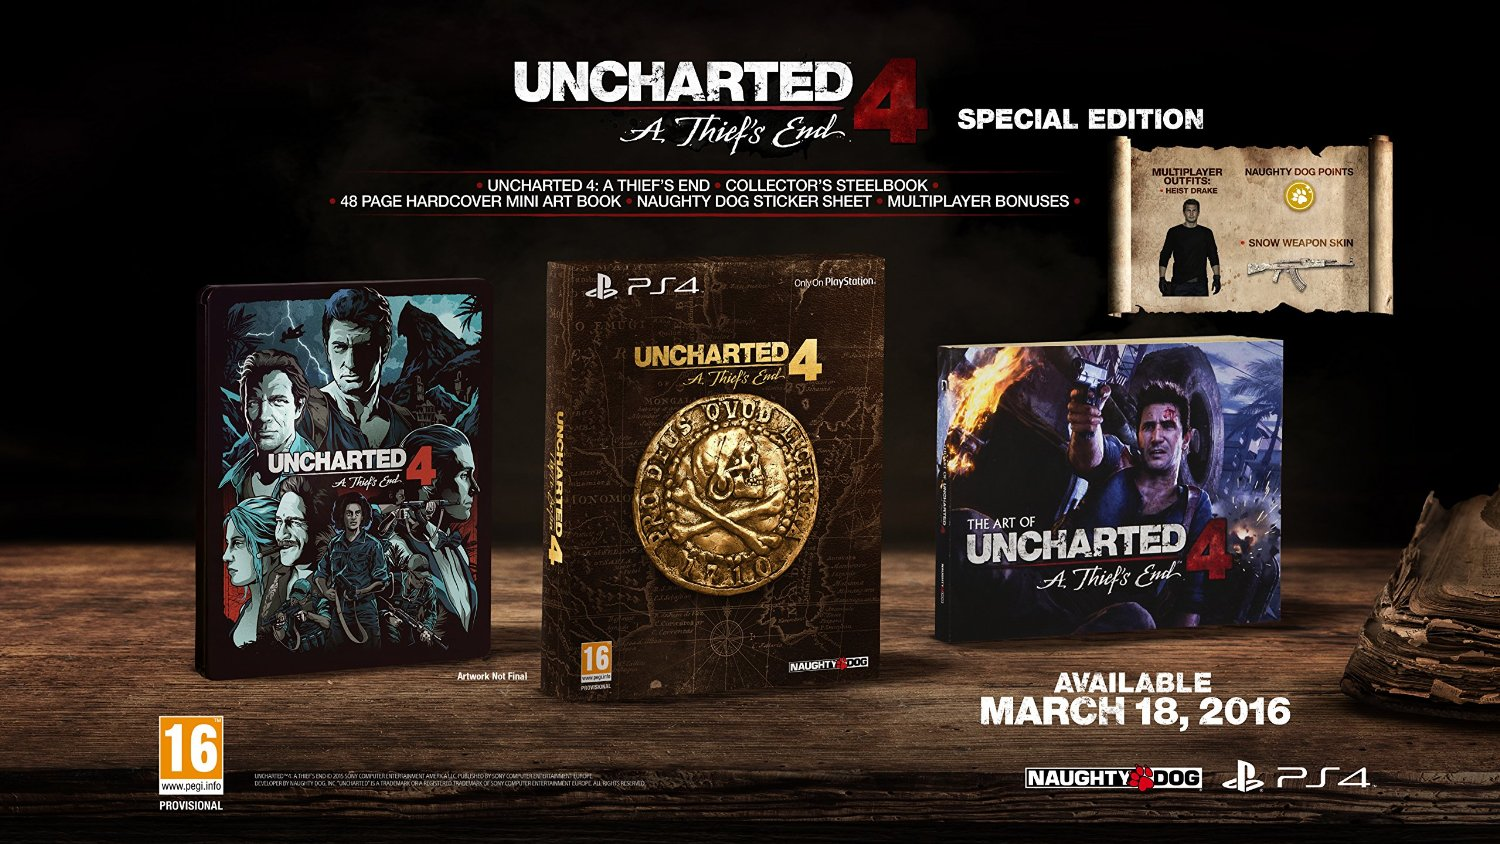 Uncharted 4 A Thief's End - Special Edition - PS4